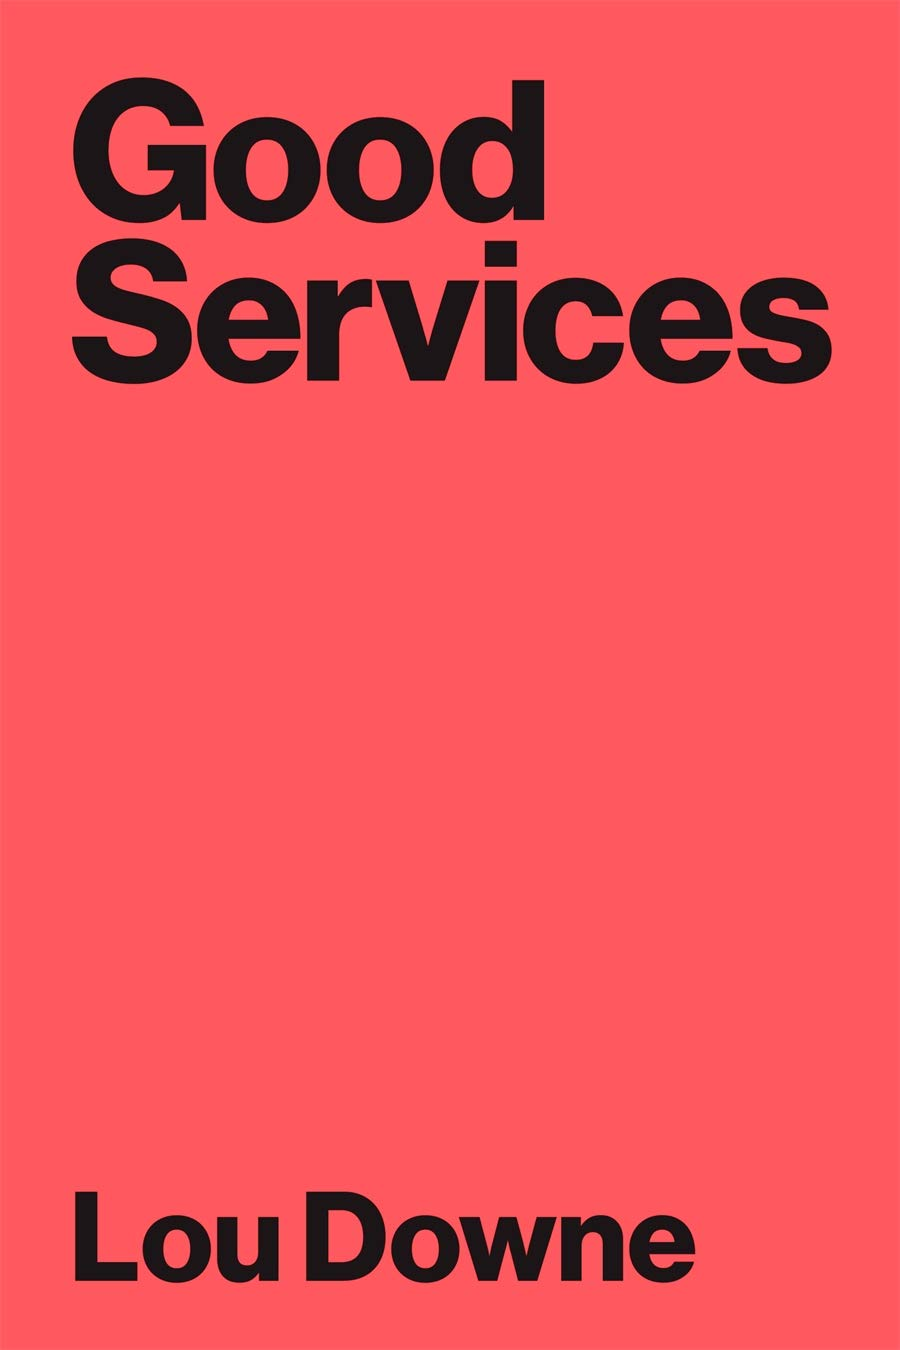 Picture of the Good Services book cover